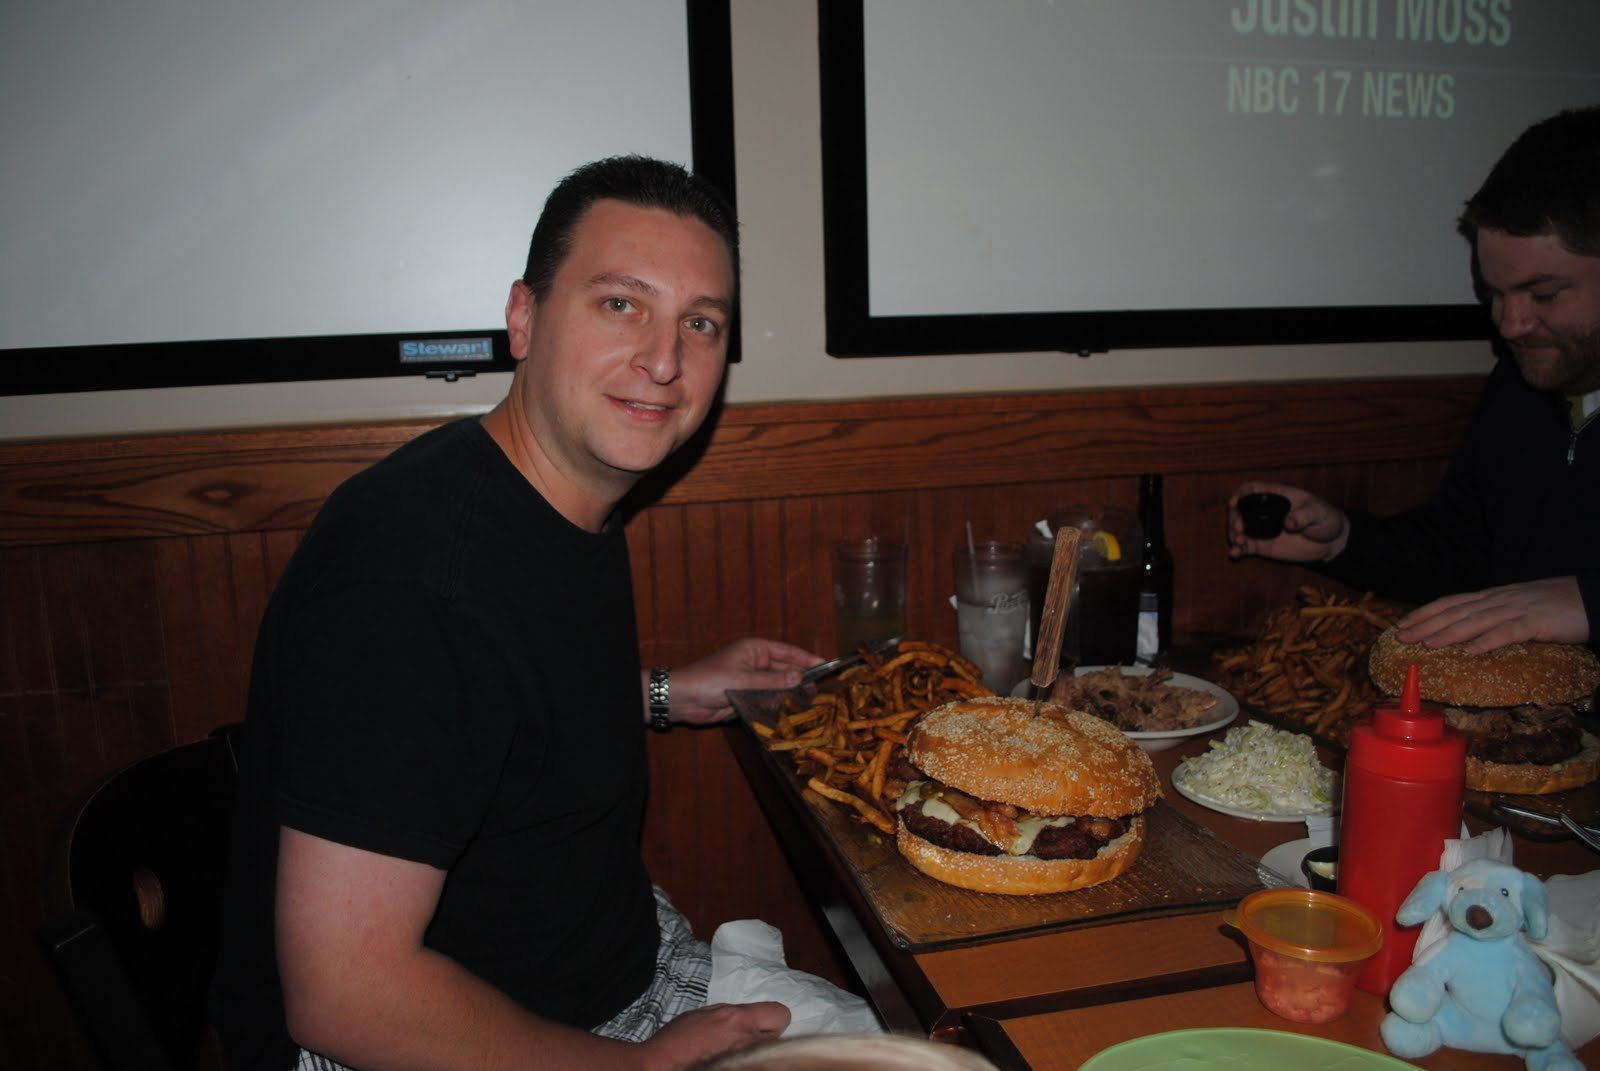 Check Out The Pictures From The Burger Challenge!